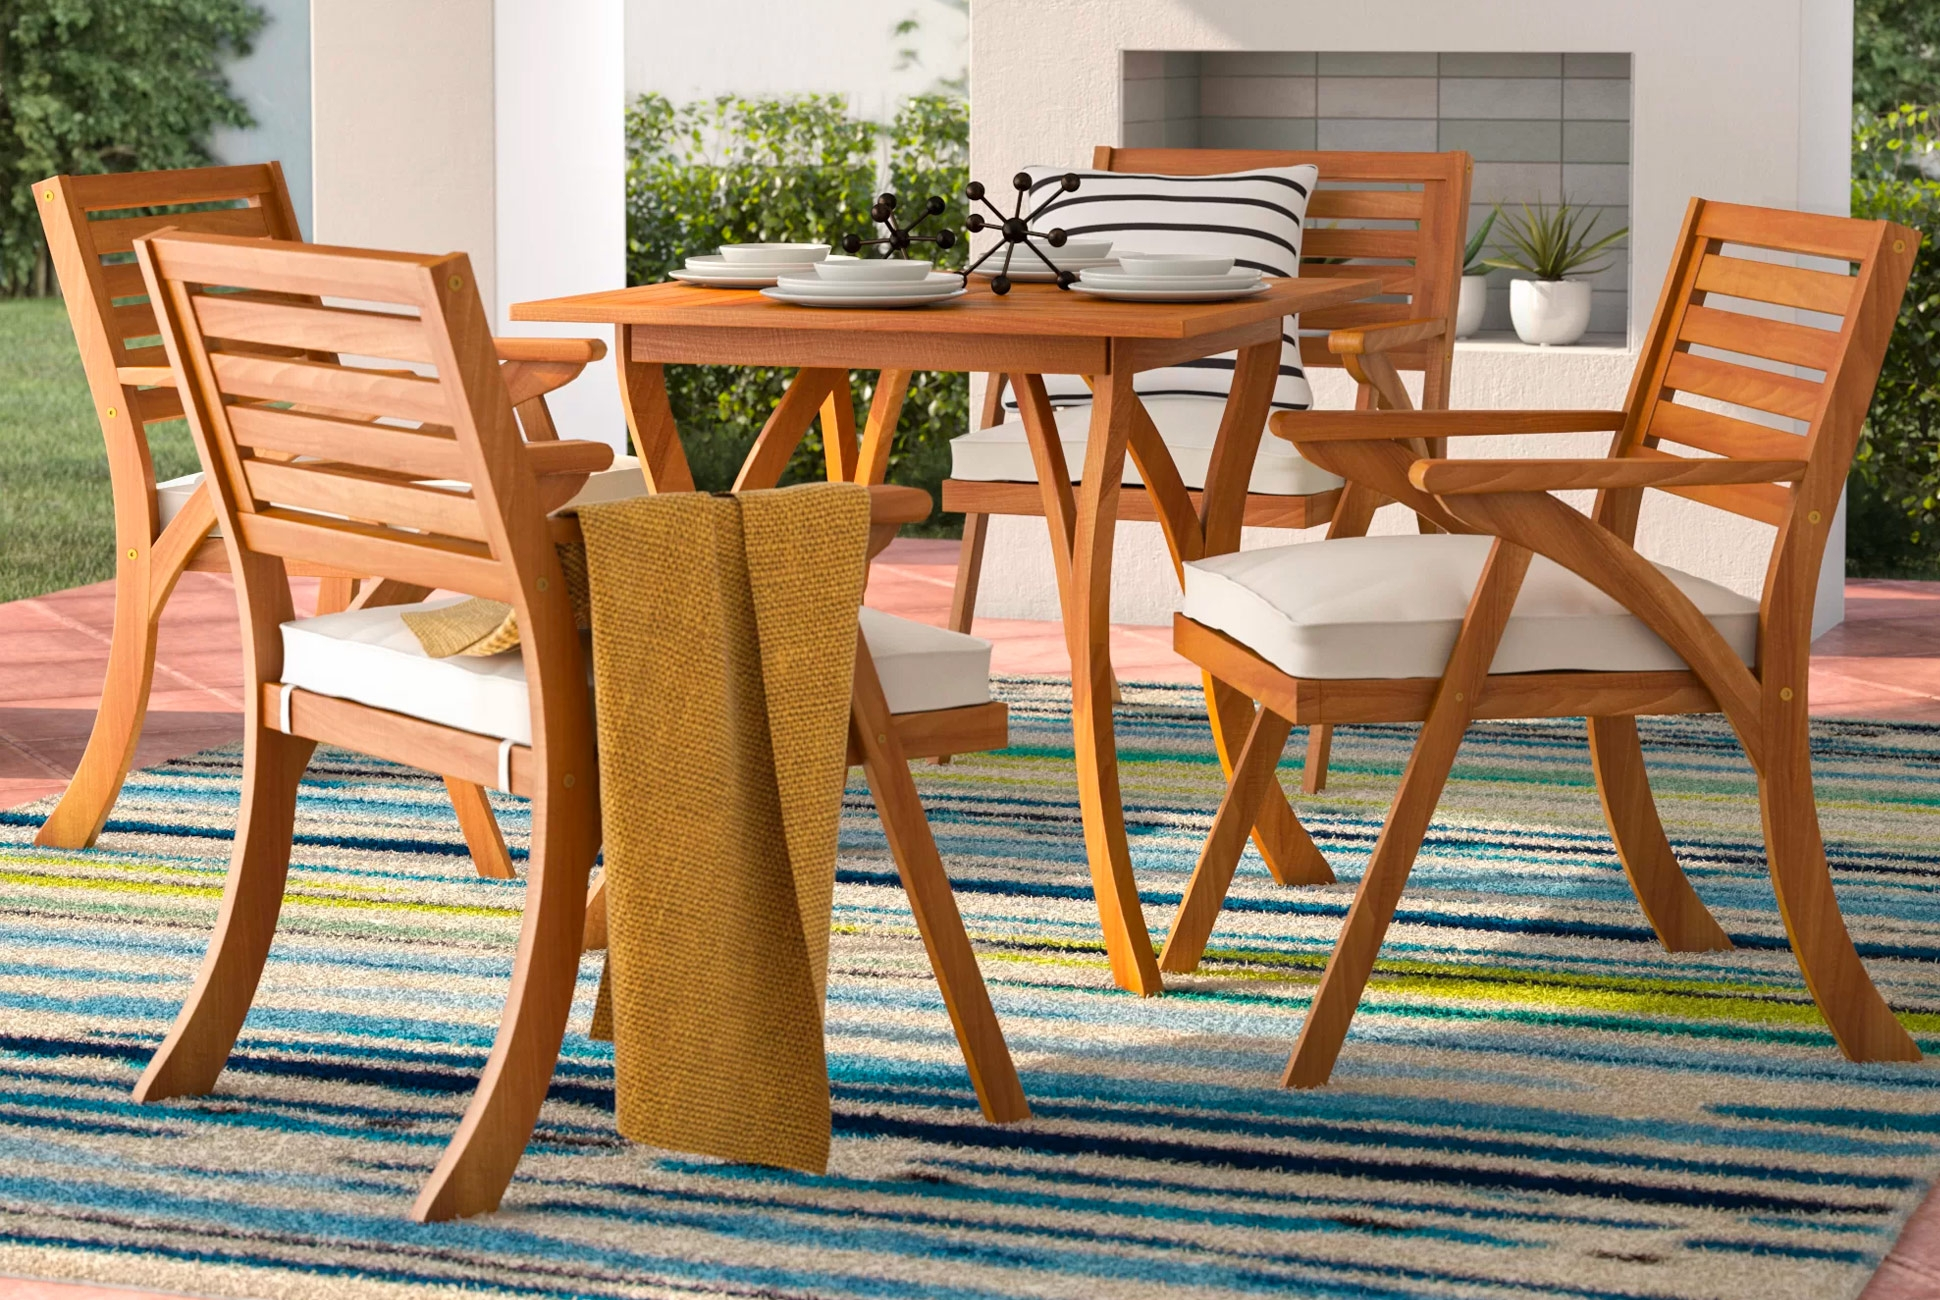 All The Cheap Outdoor Furniture You Could Need Is On Sale Now Gear Layjao